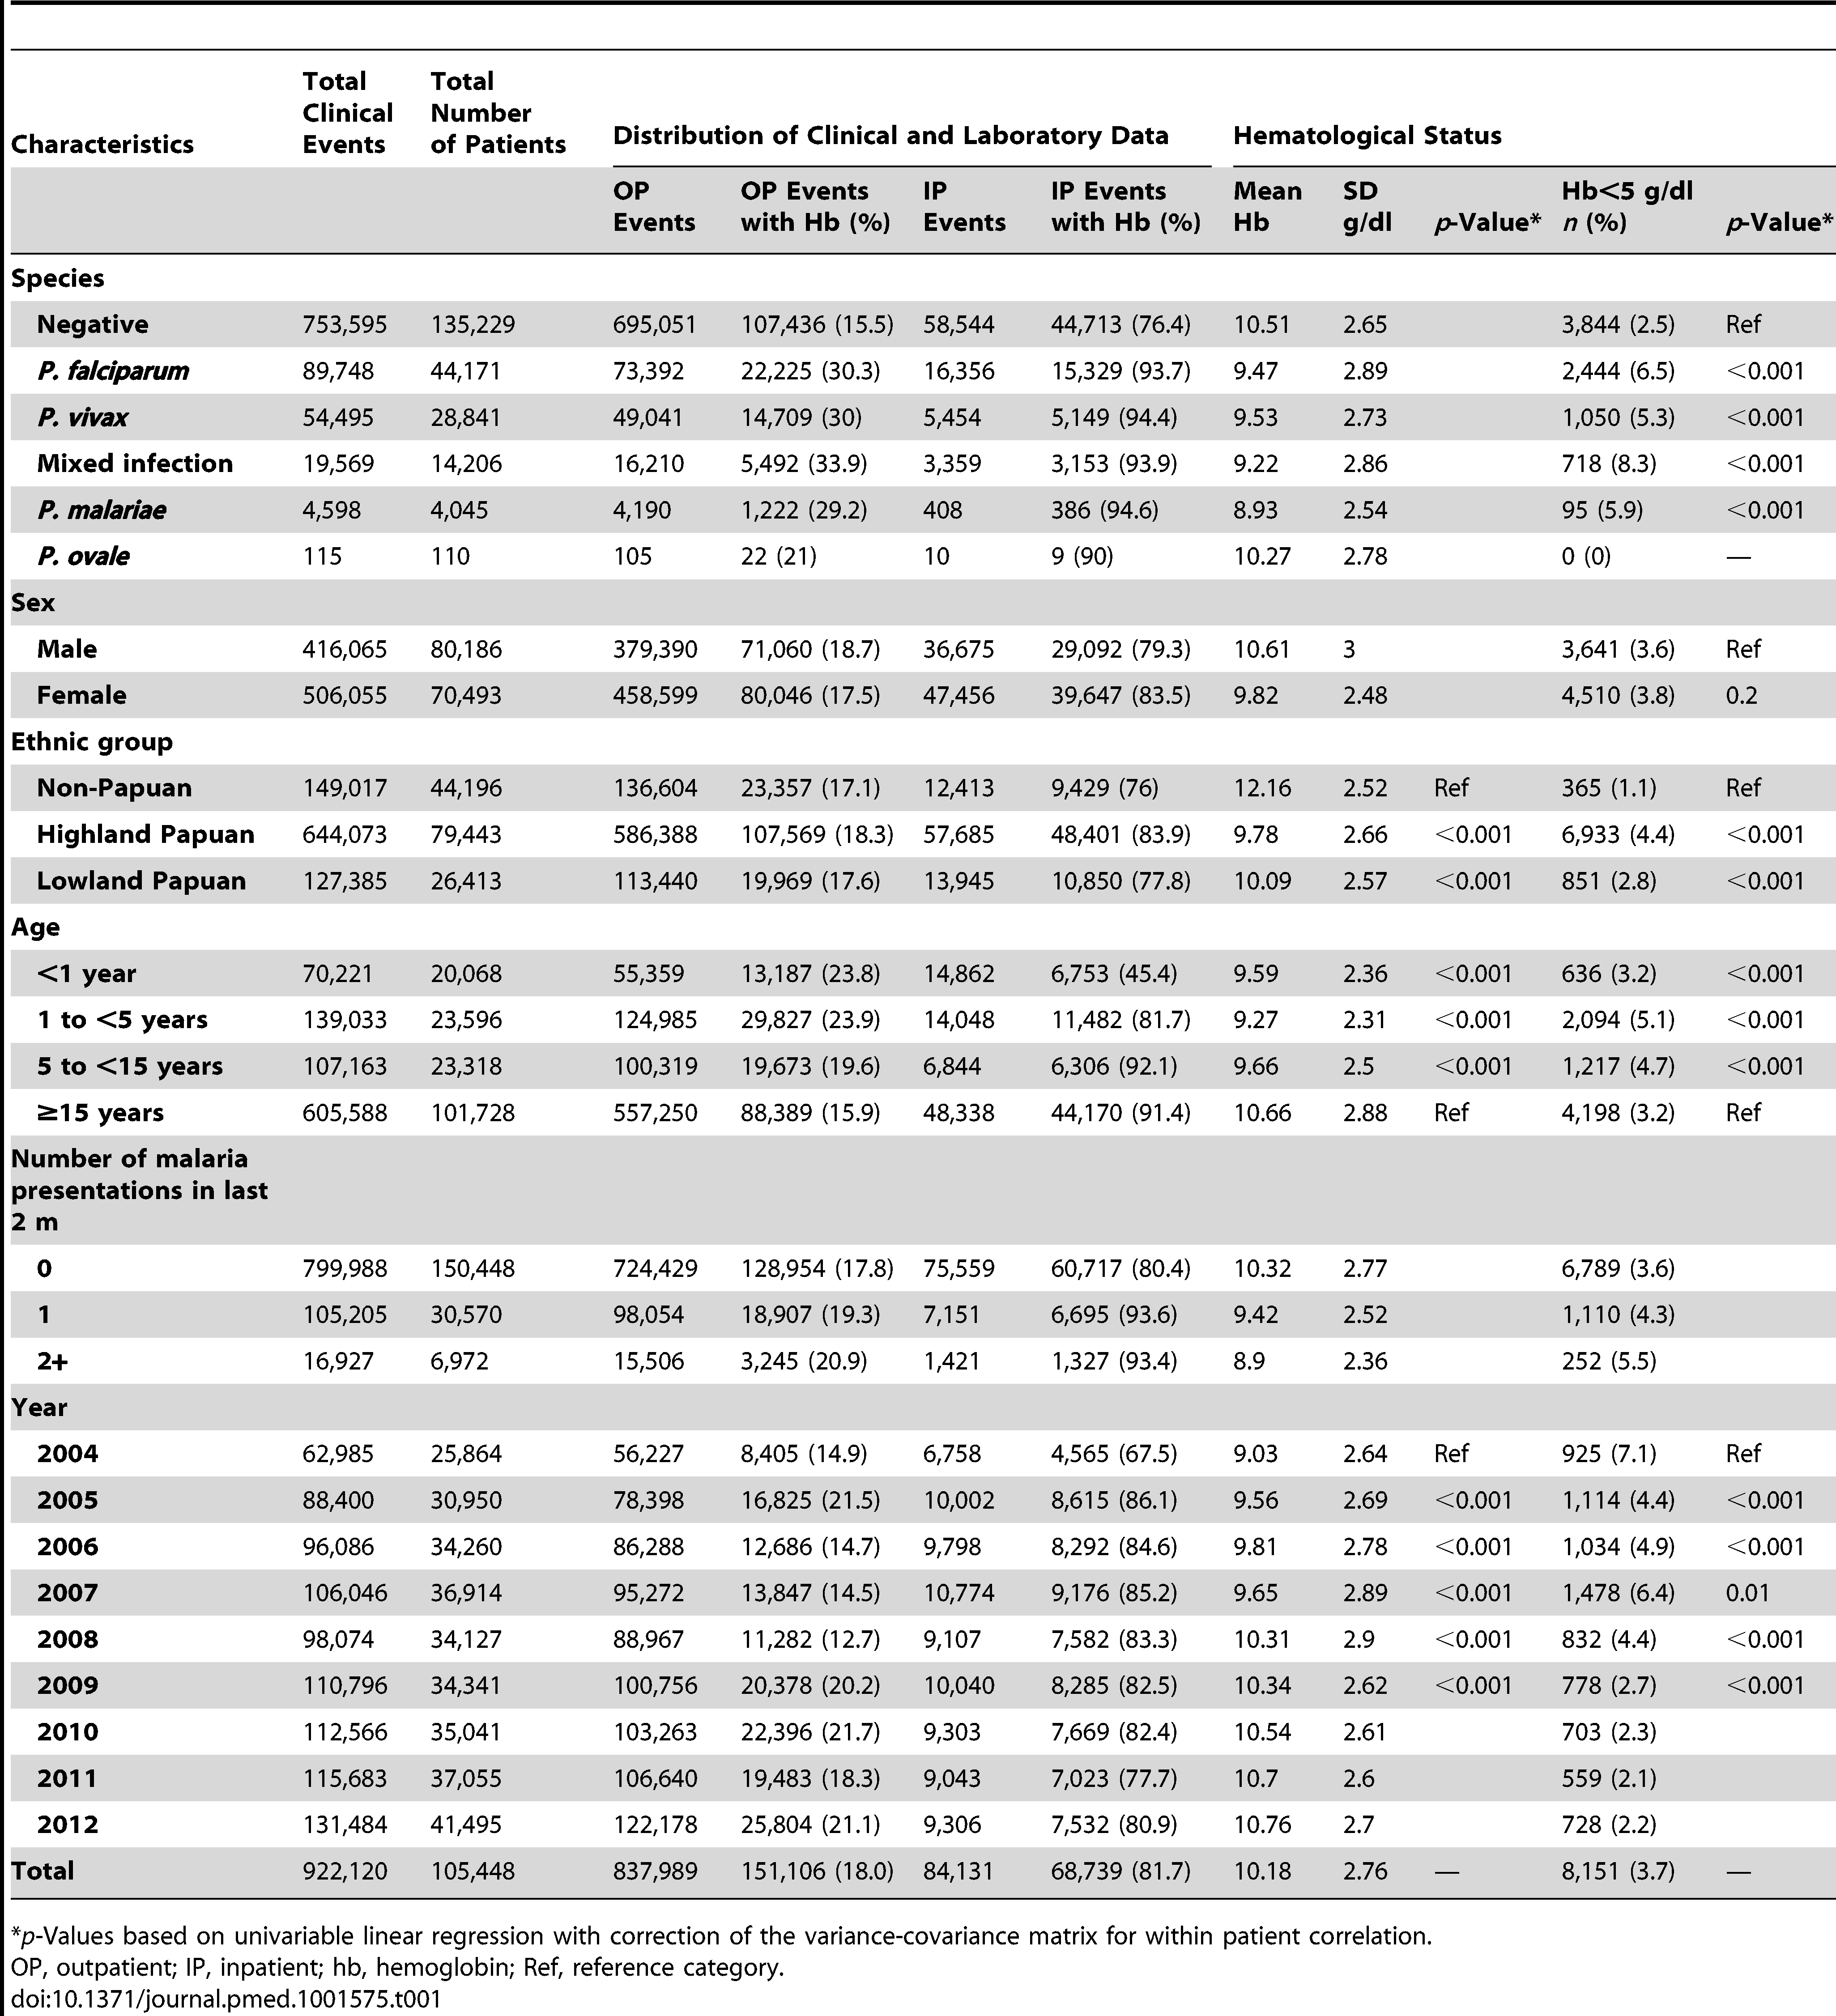 Distribution of clinical and laboratory data plus hematological status by clinical and demographic group.